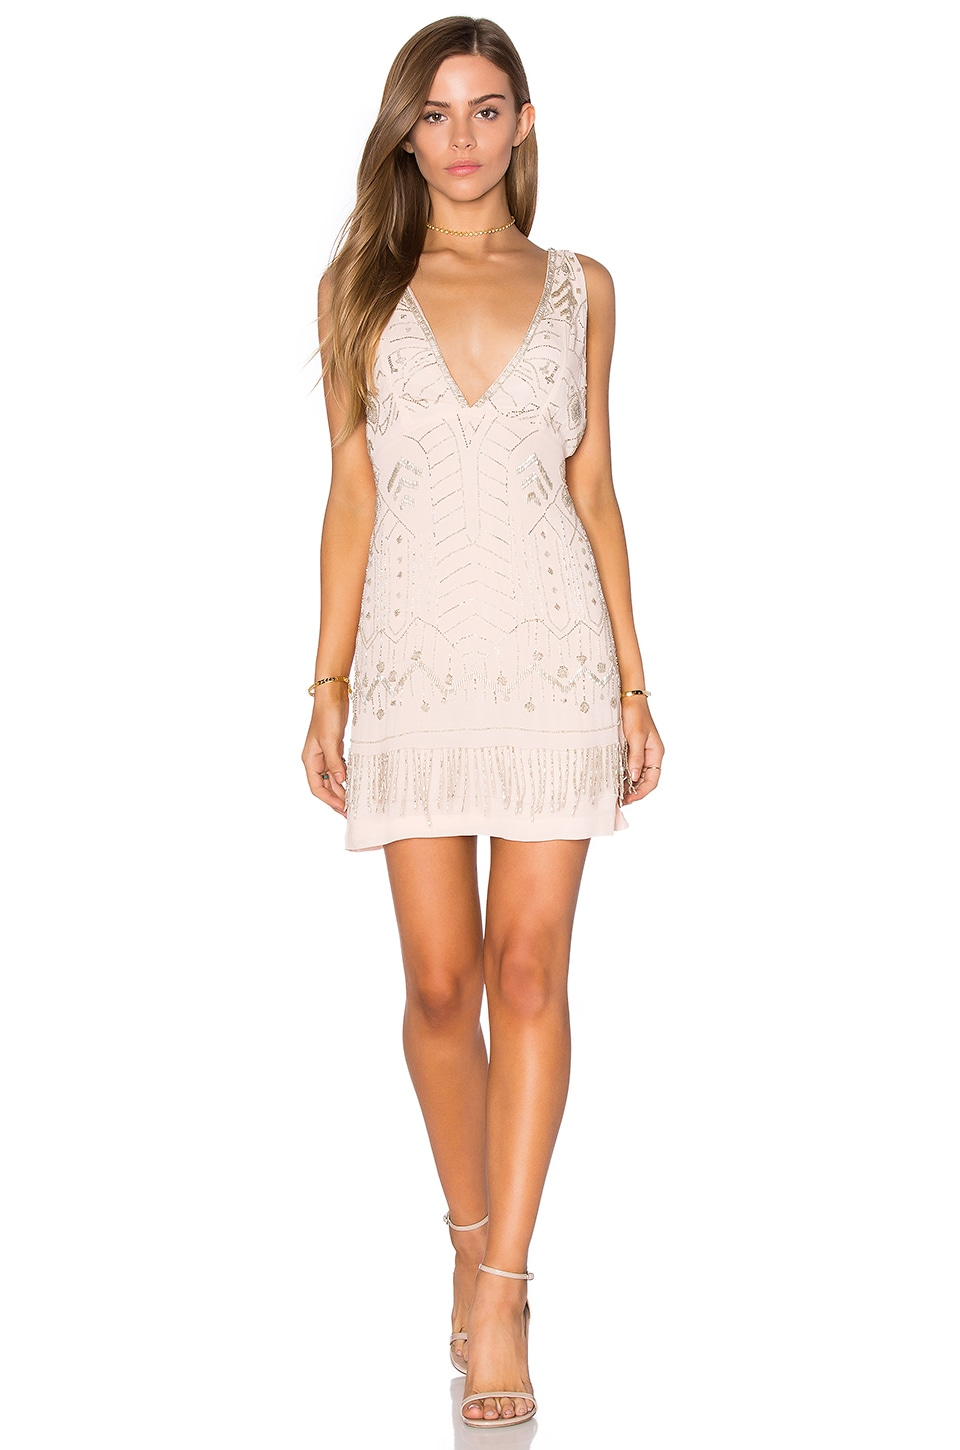 Tessora Embellished Cocktail Dress in Pale Pink